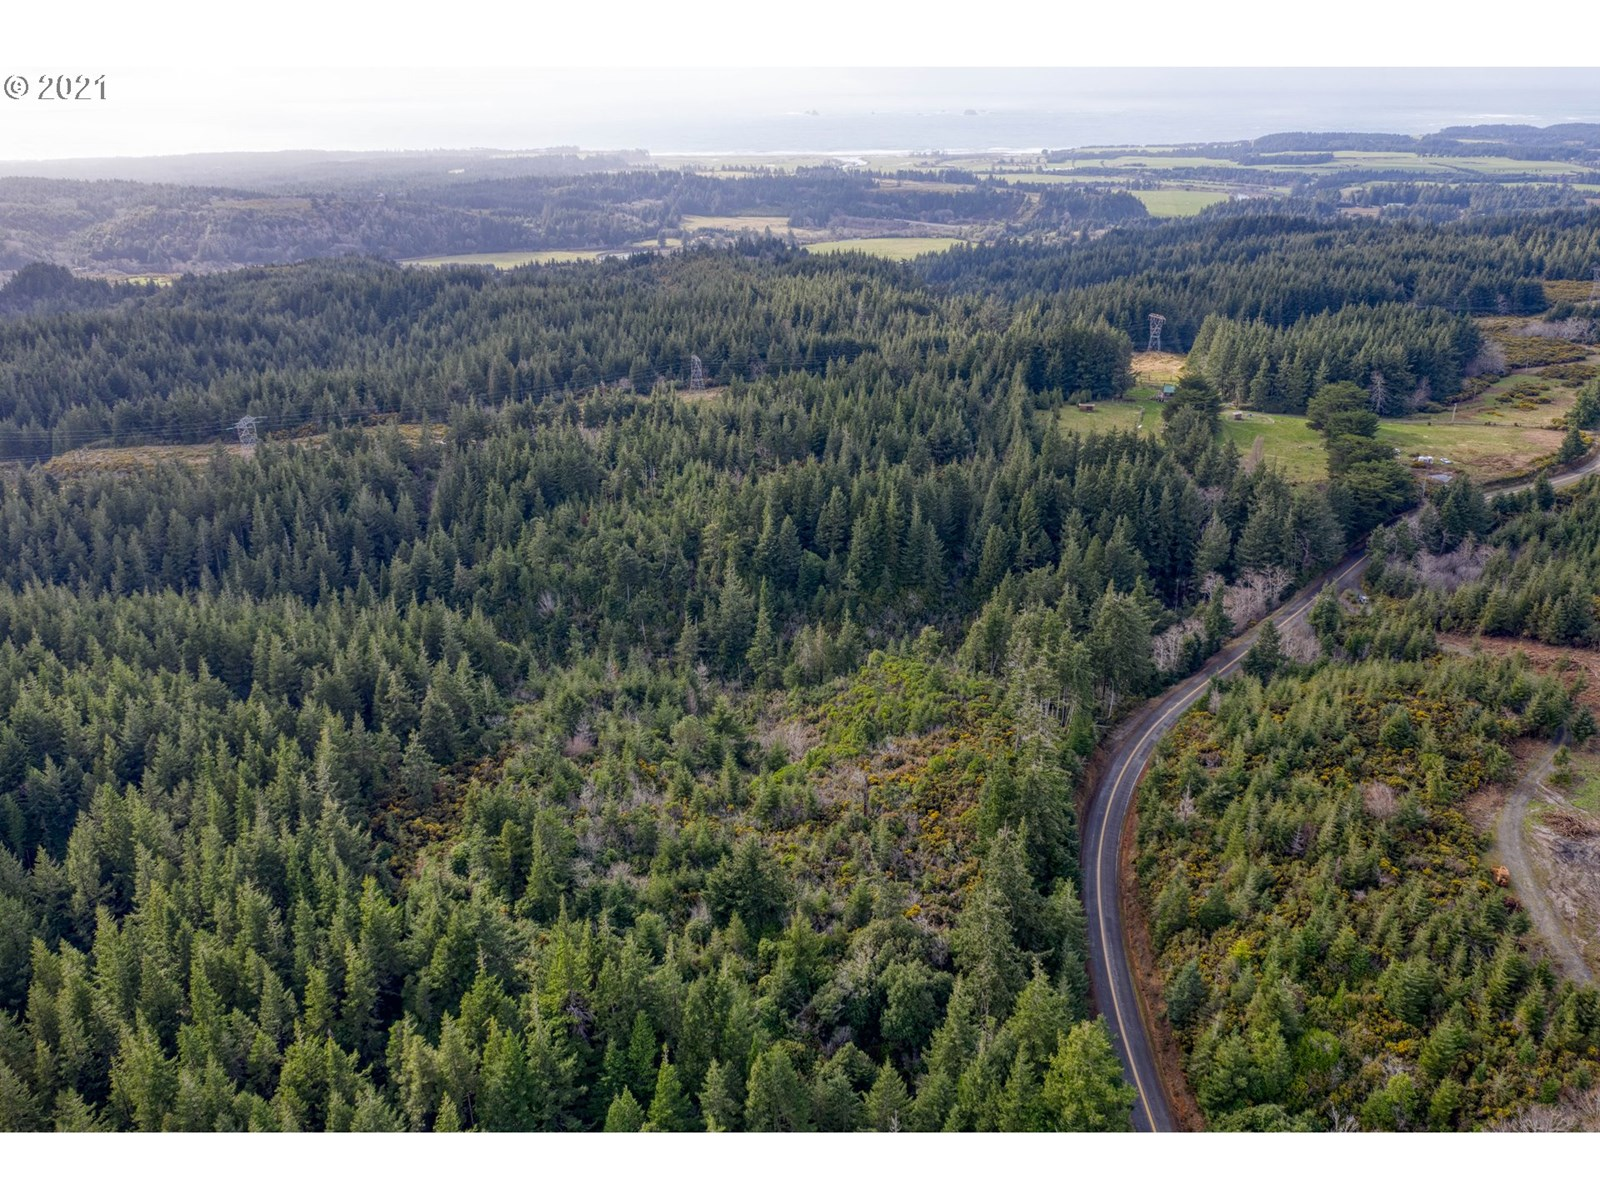 160 Acre Parcel For Sale North of Port Orford